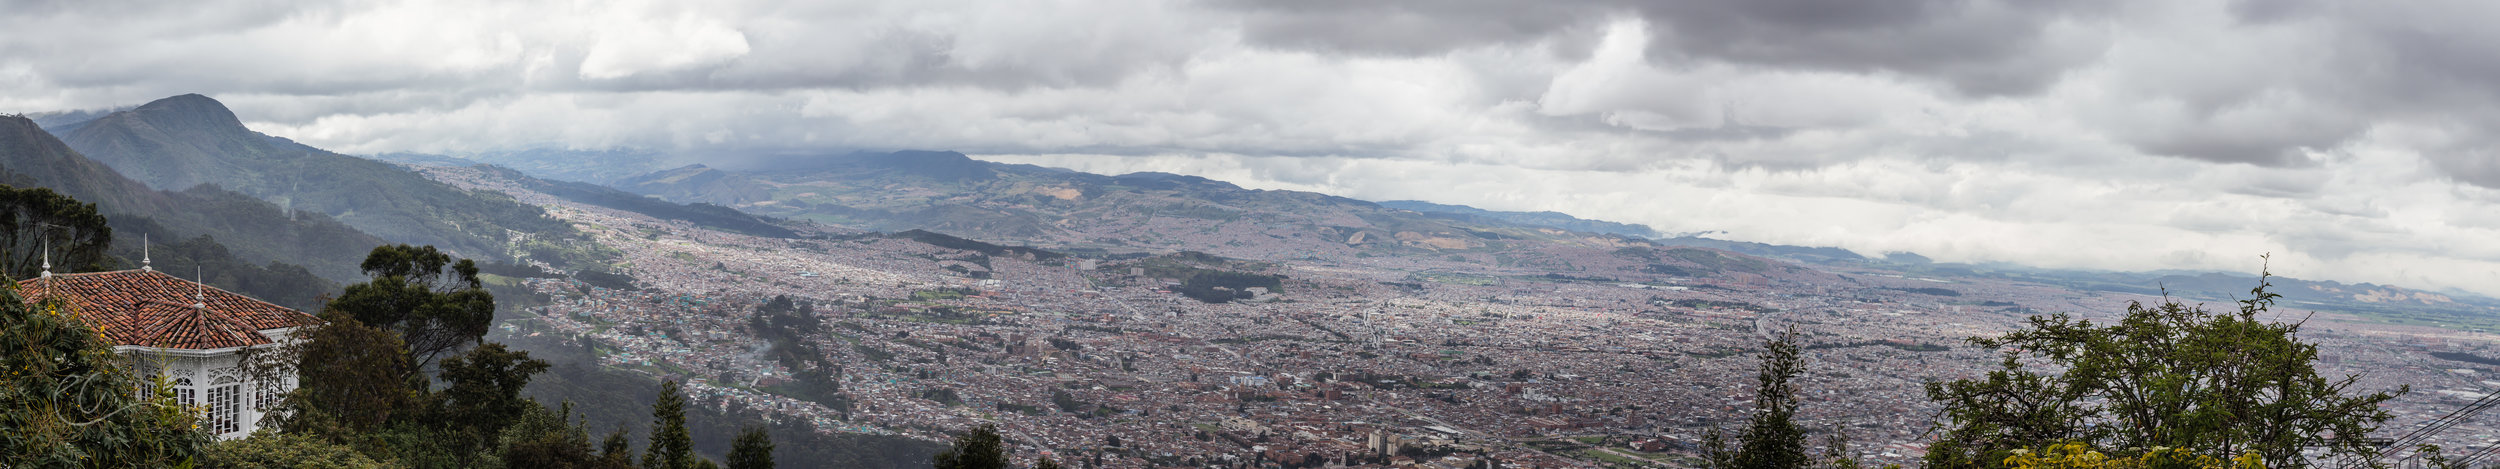 17Nov_Colombia_055-Pano.jpg